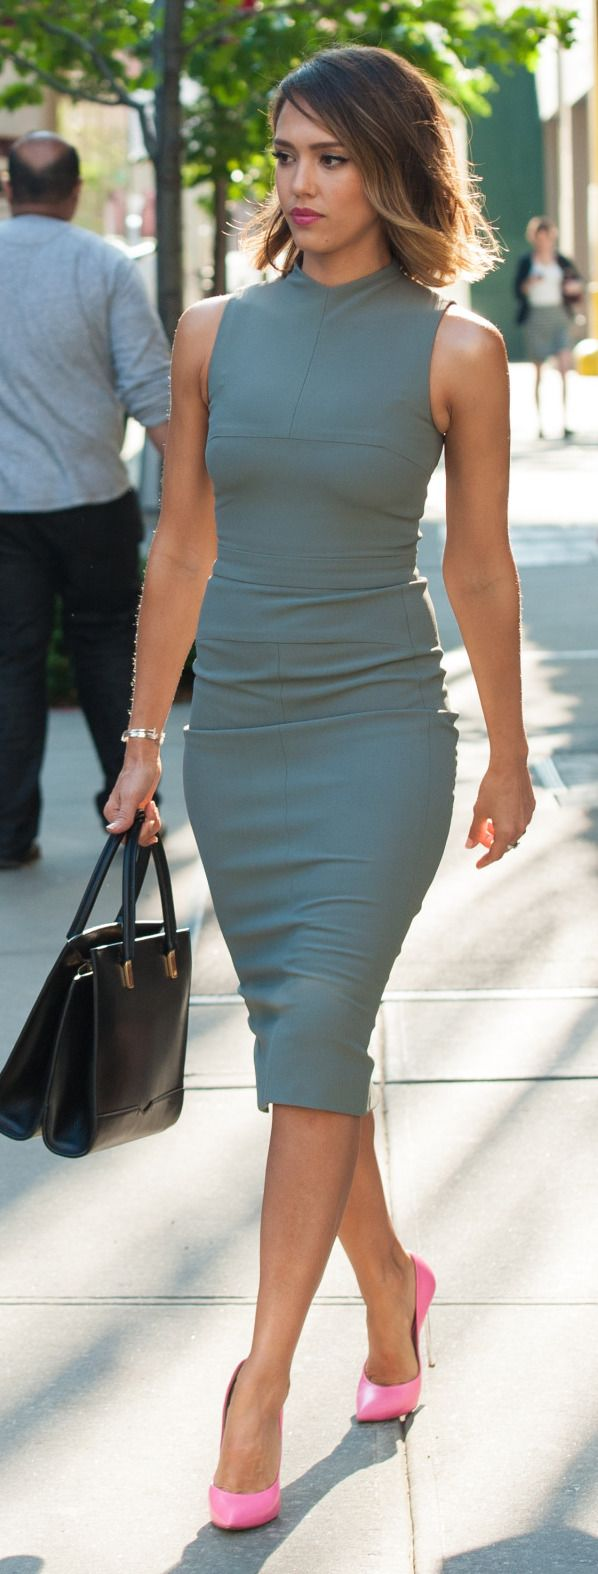 #Flattering blue grey dress and pink #pumps, black handbag. Street summer elegant #women fashion outfit clothing style apparel @roressclothes closet ideas